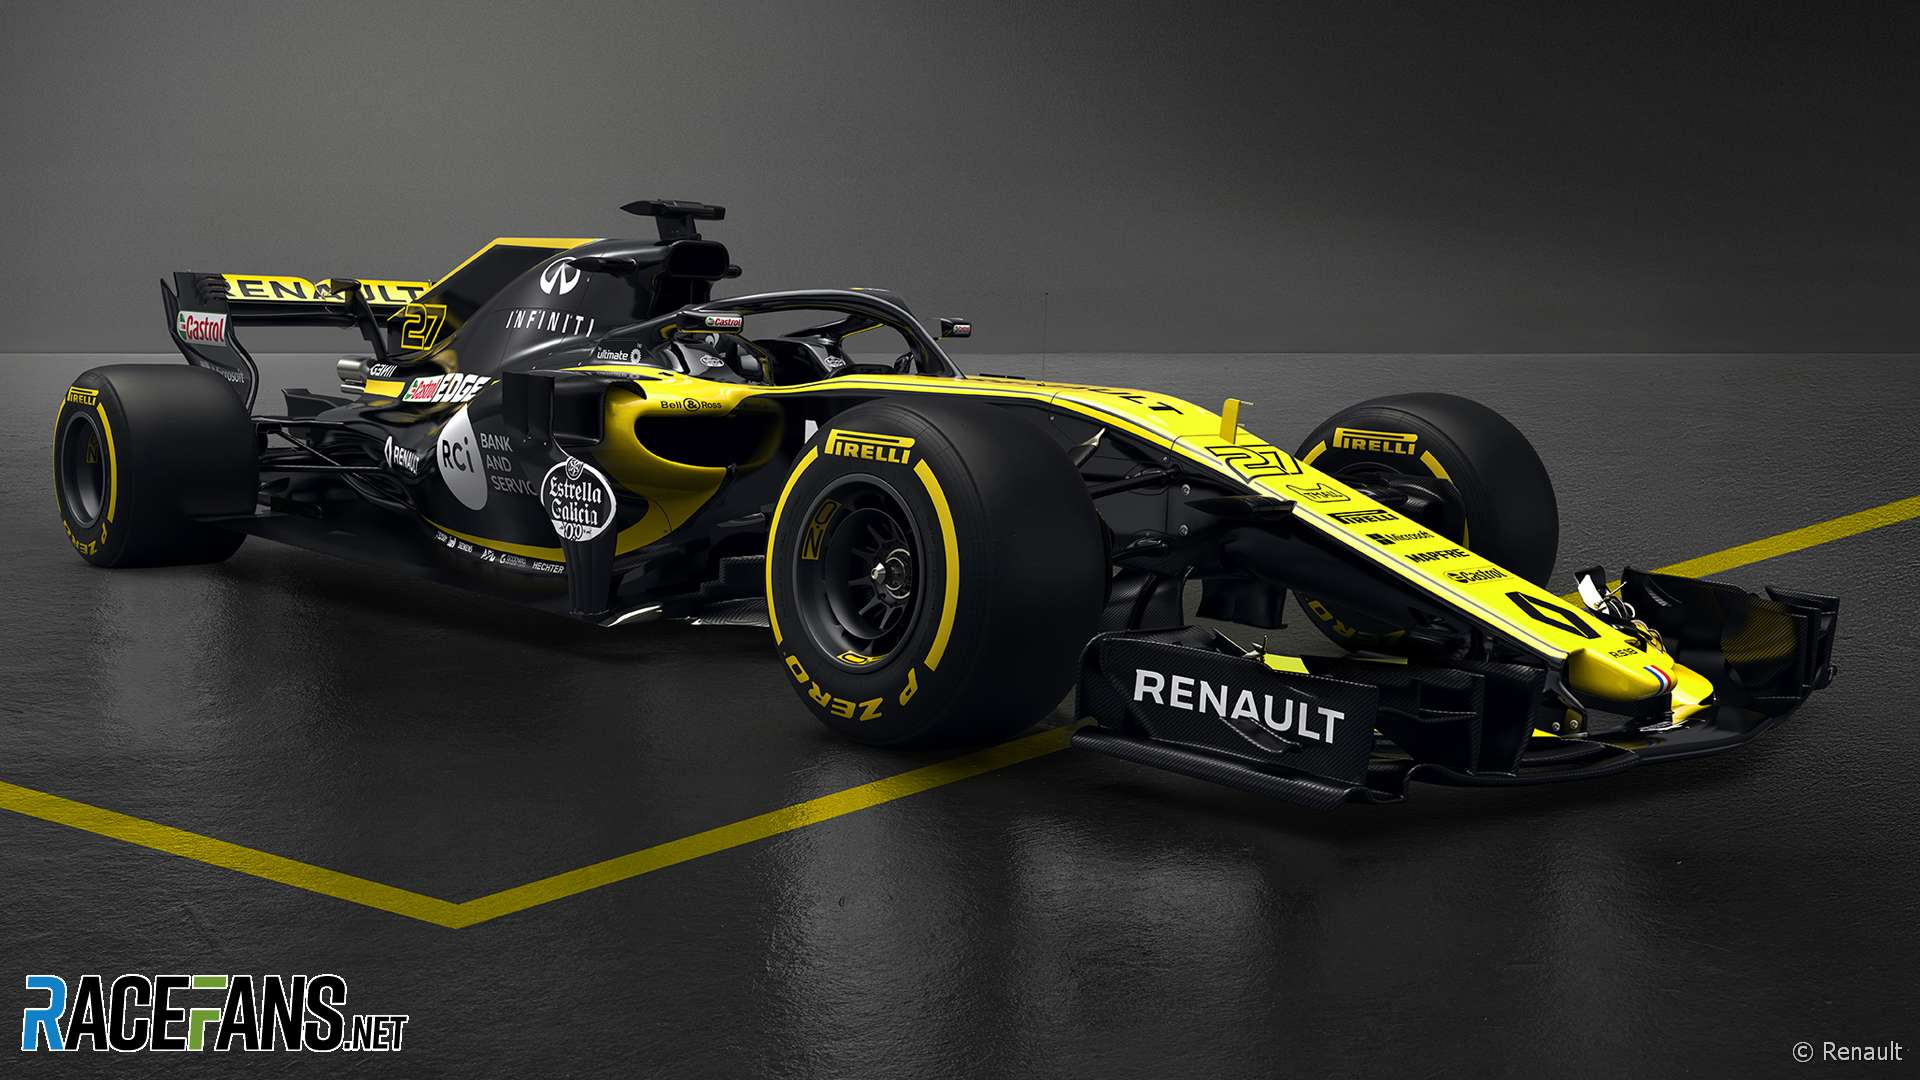 cfd wind tunnel and dyno upgrades at renault factory for 2018 2018 f1 season racefans. Black Bedroom Furniture Sets. Home Design Ideas